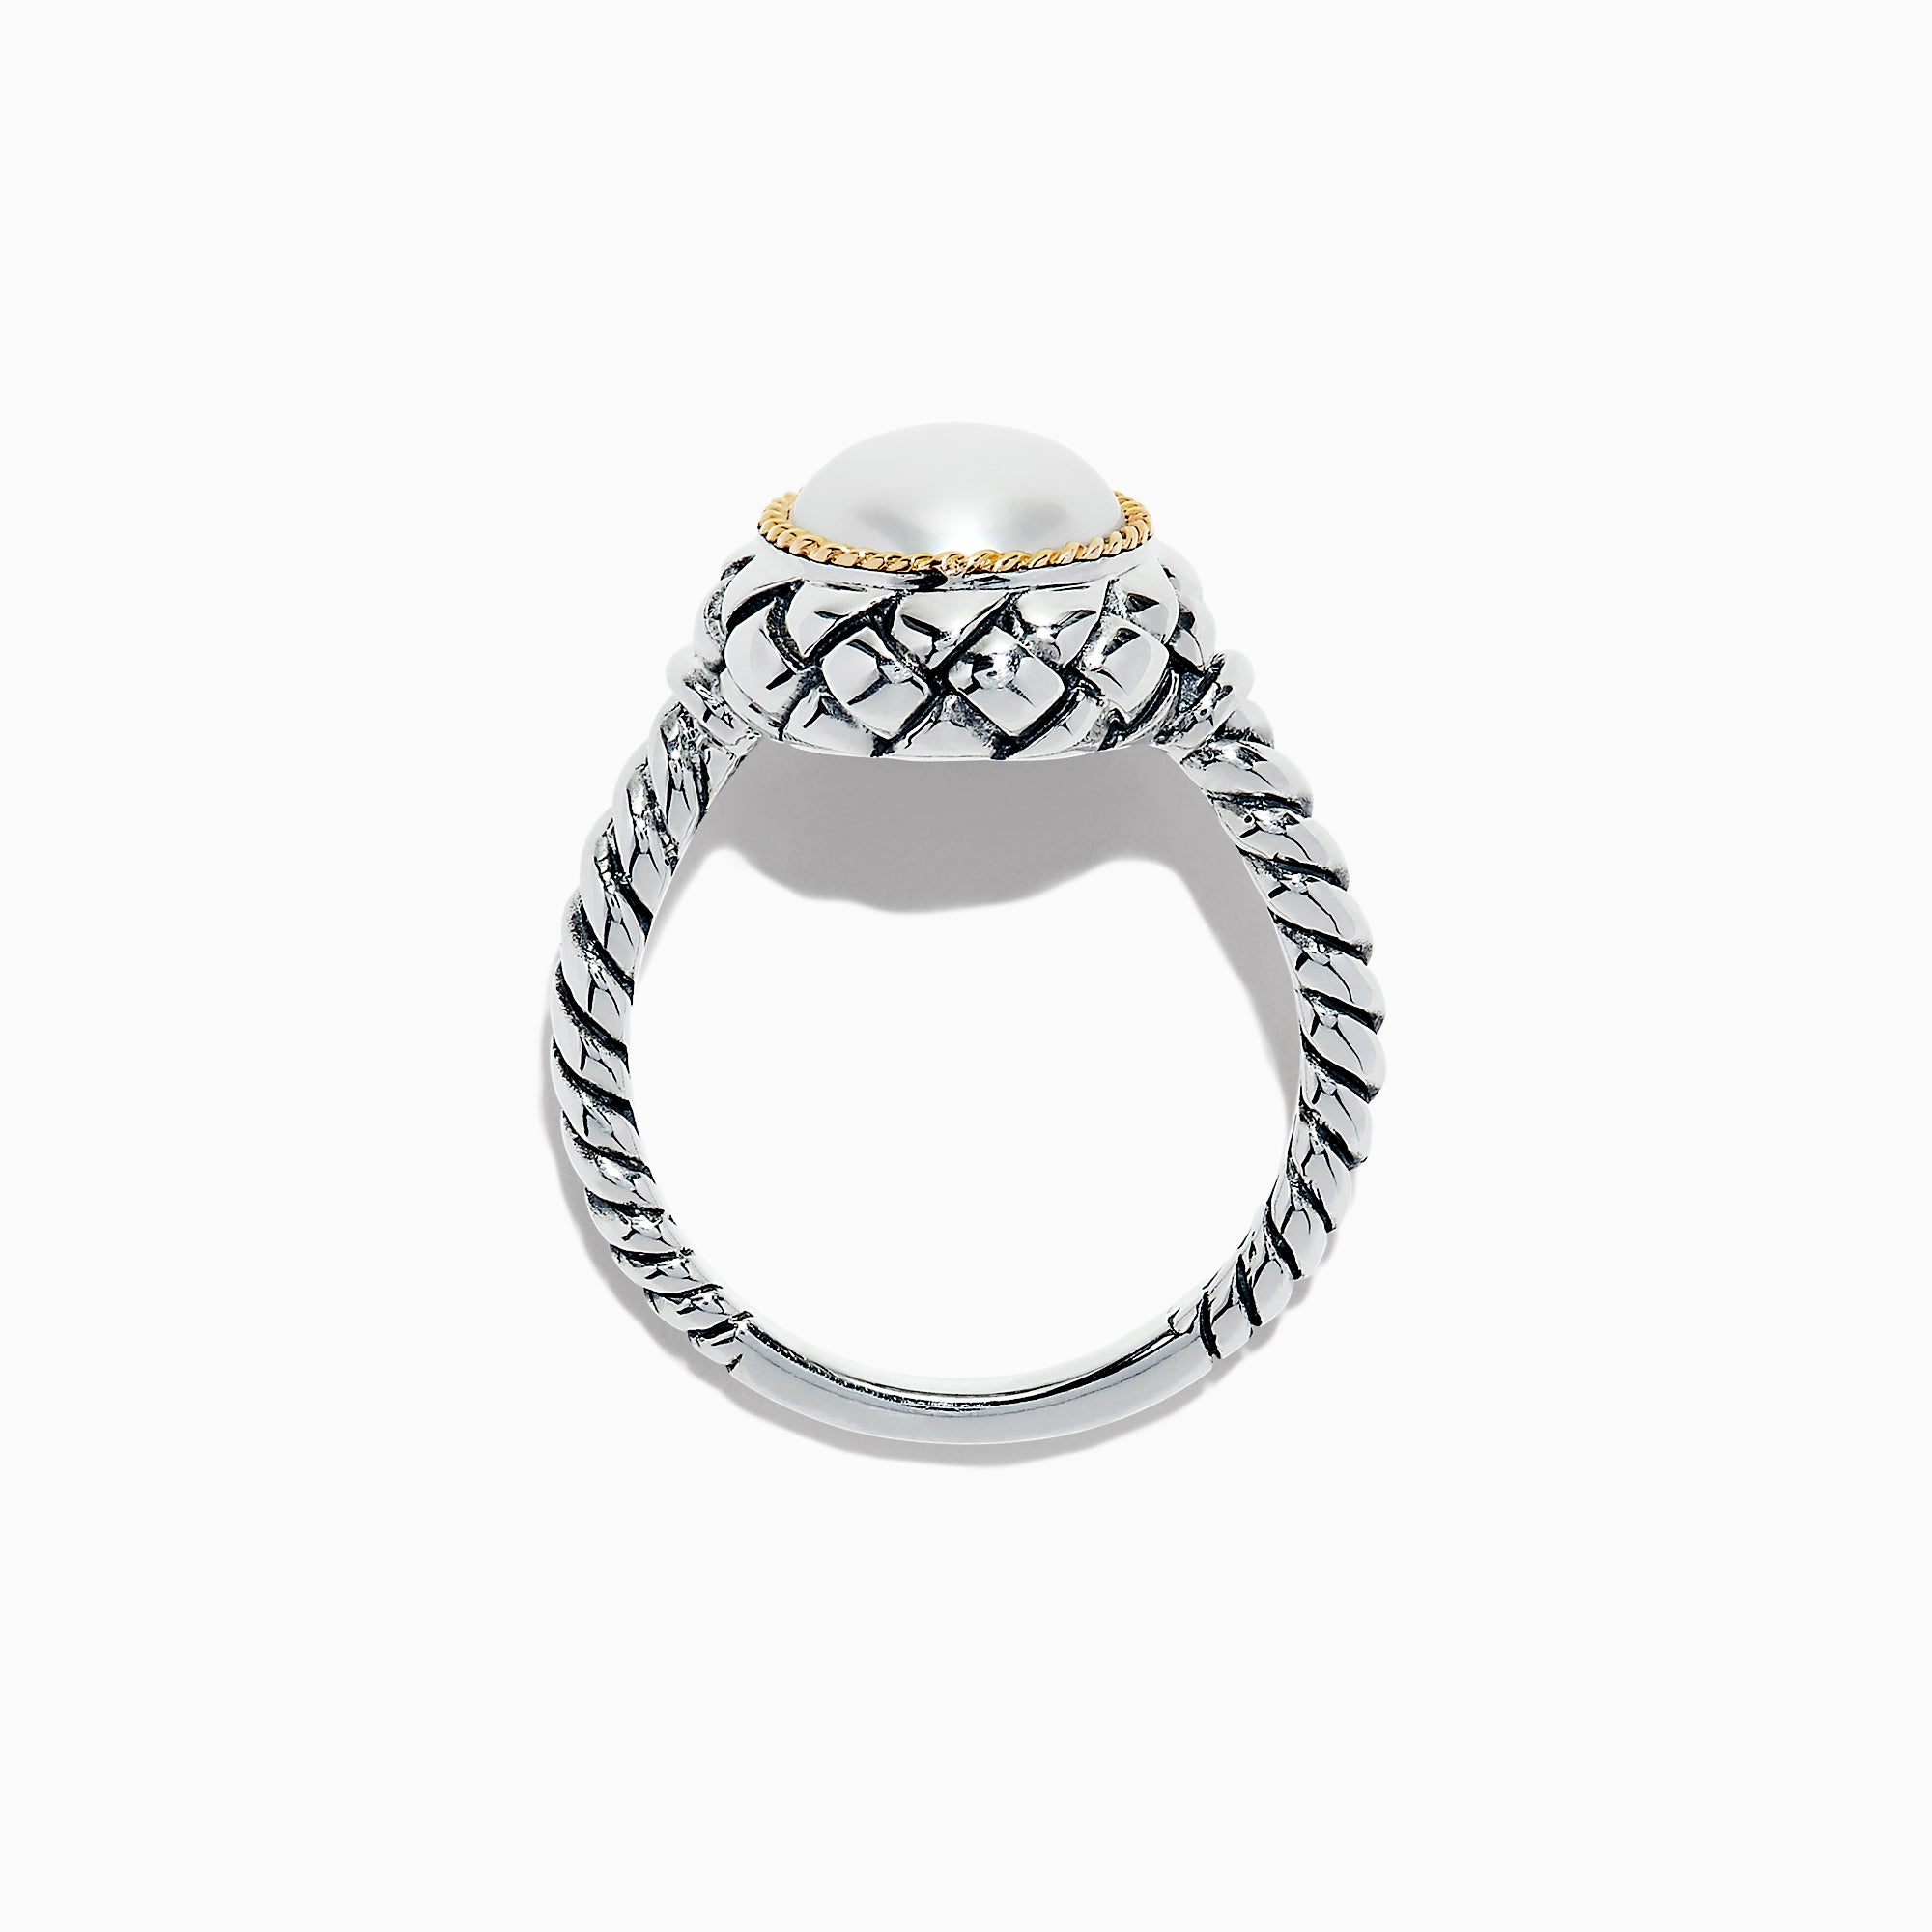 Effy 925 Sterling Silver & 18K Yellow Gold Cultured Fresh Water Pearl Ring